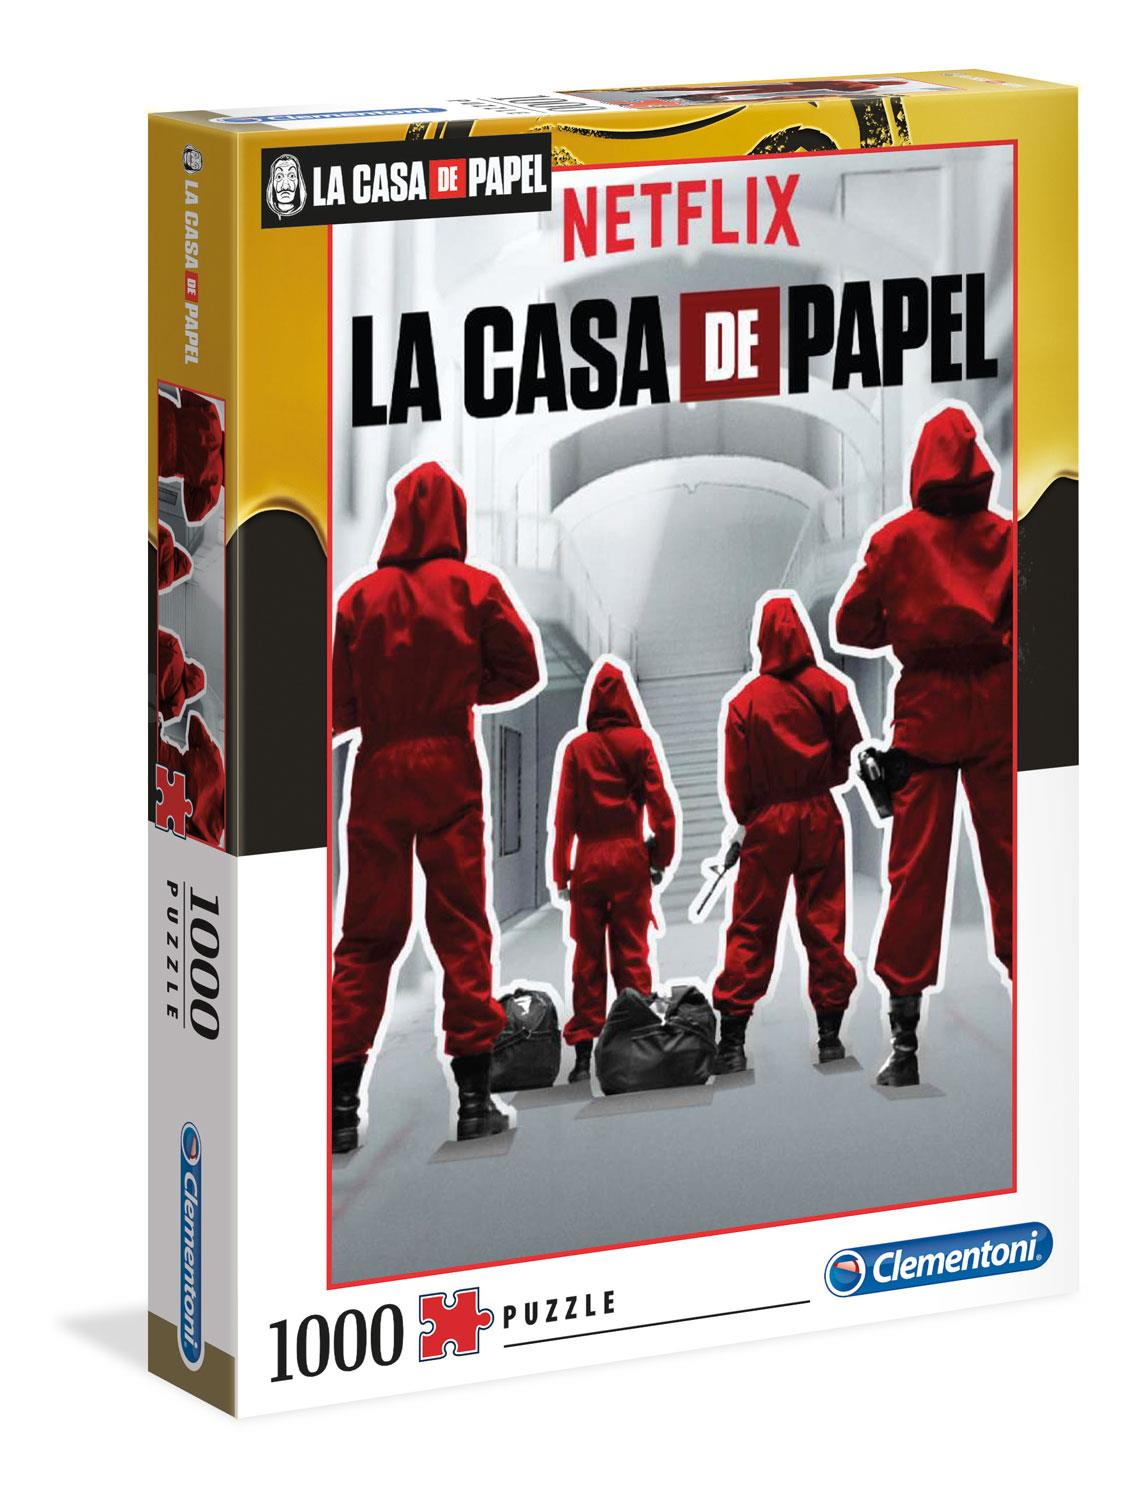 Clementoni La Casa de Papel 1 - Money Heist - Jigsaw Puzzle (1000 Pieces)